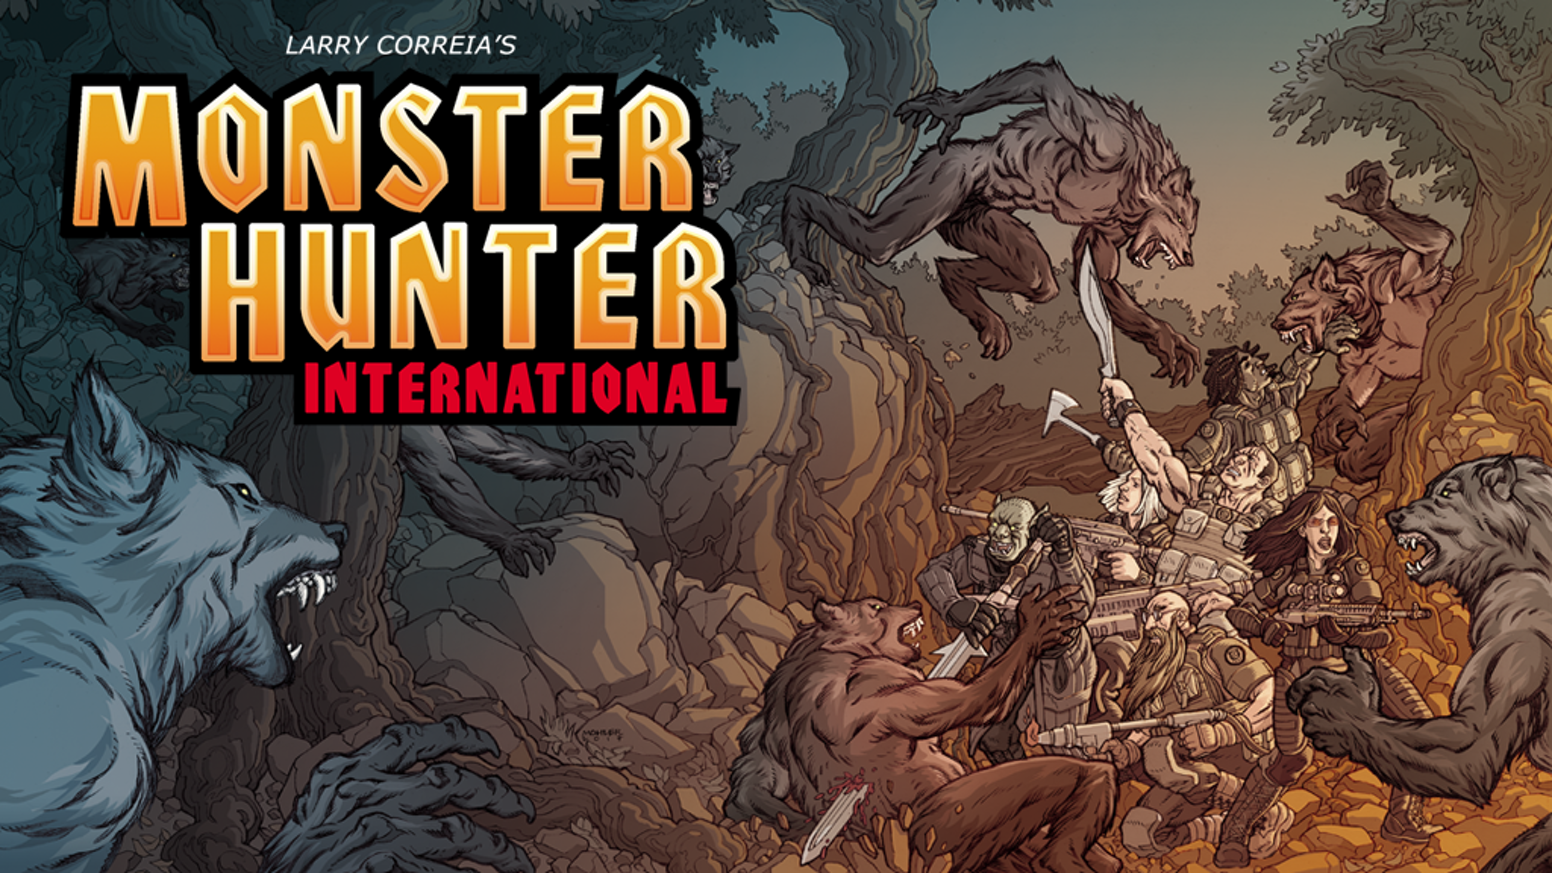 The NYT Bestselling action fantasy series Monster Hunter International comes to Savage Worlds in an all new Kickstarter!